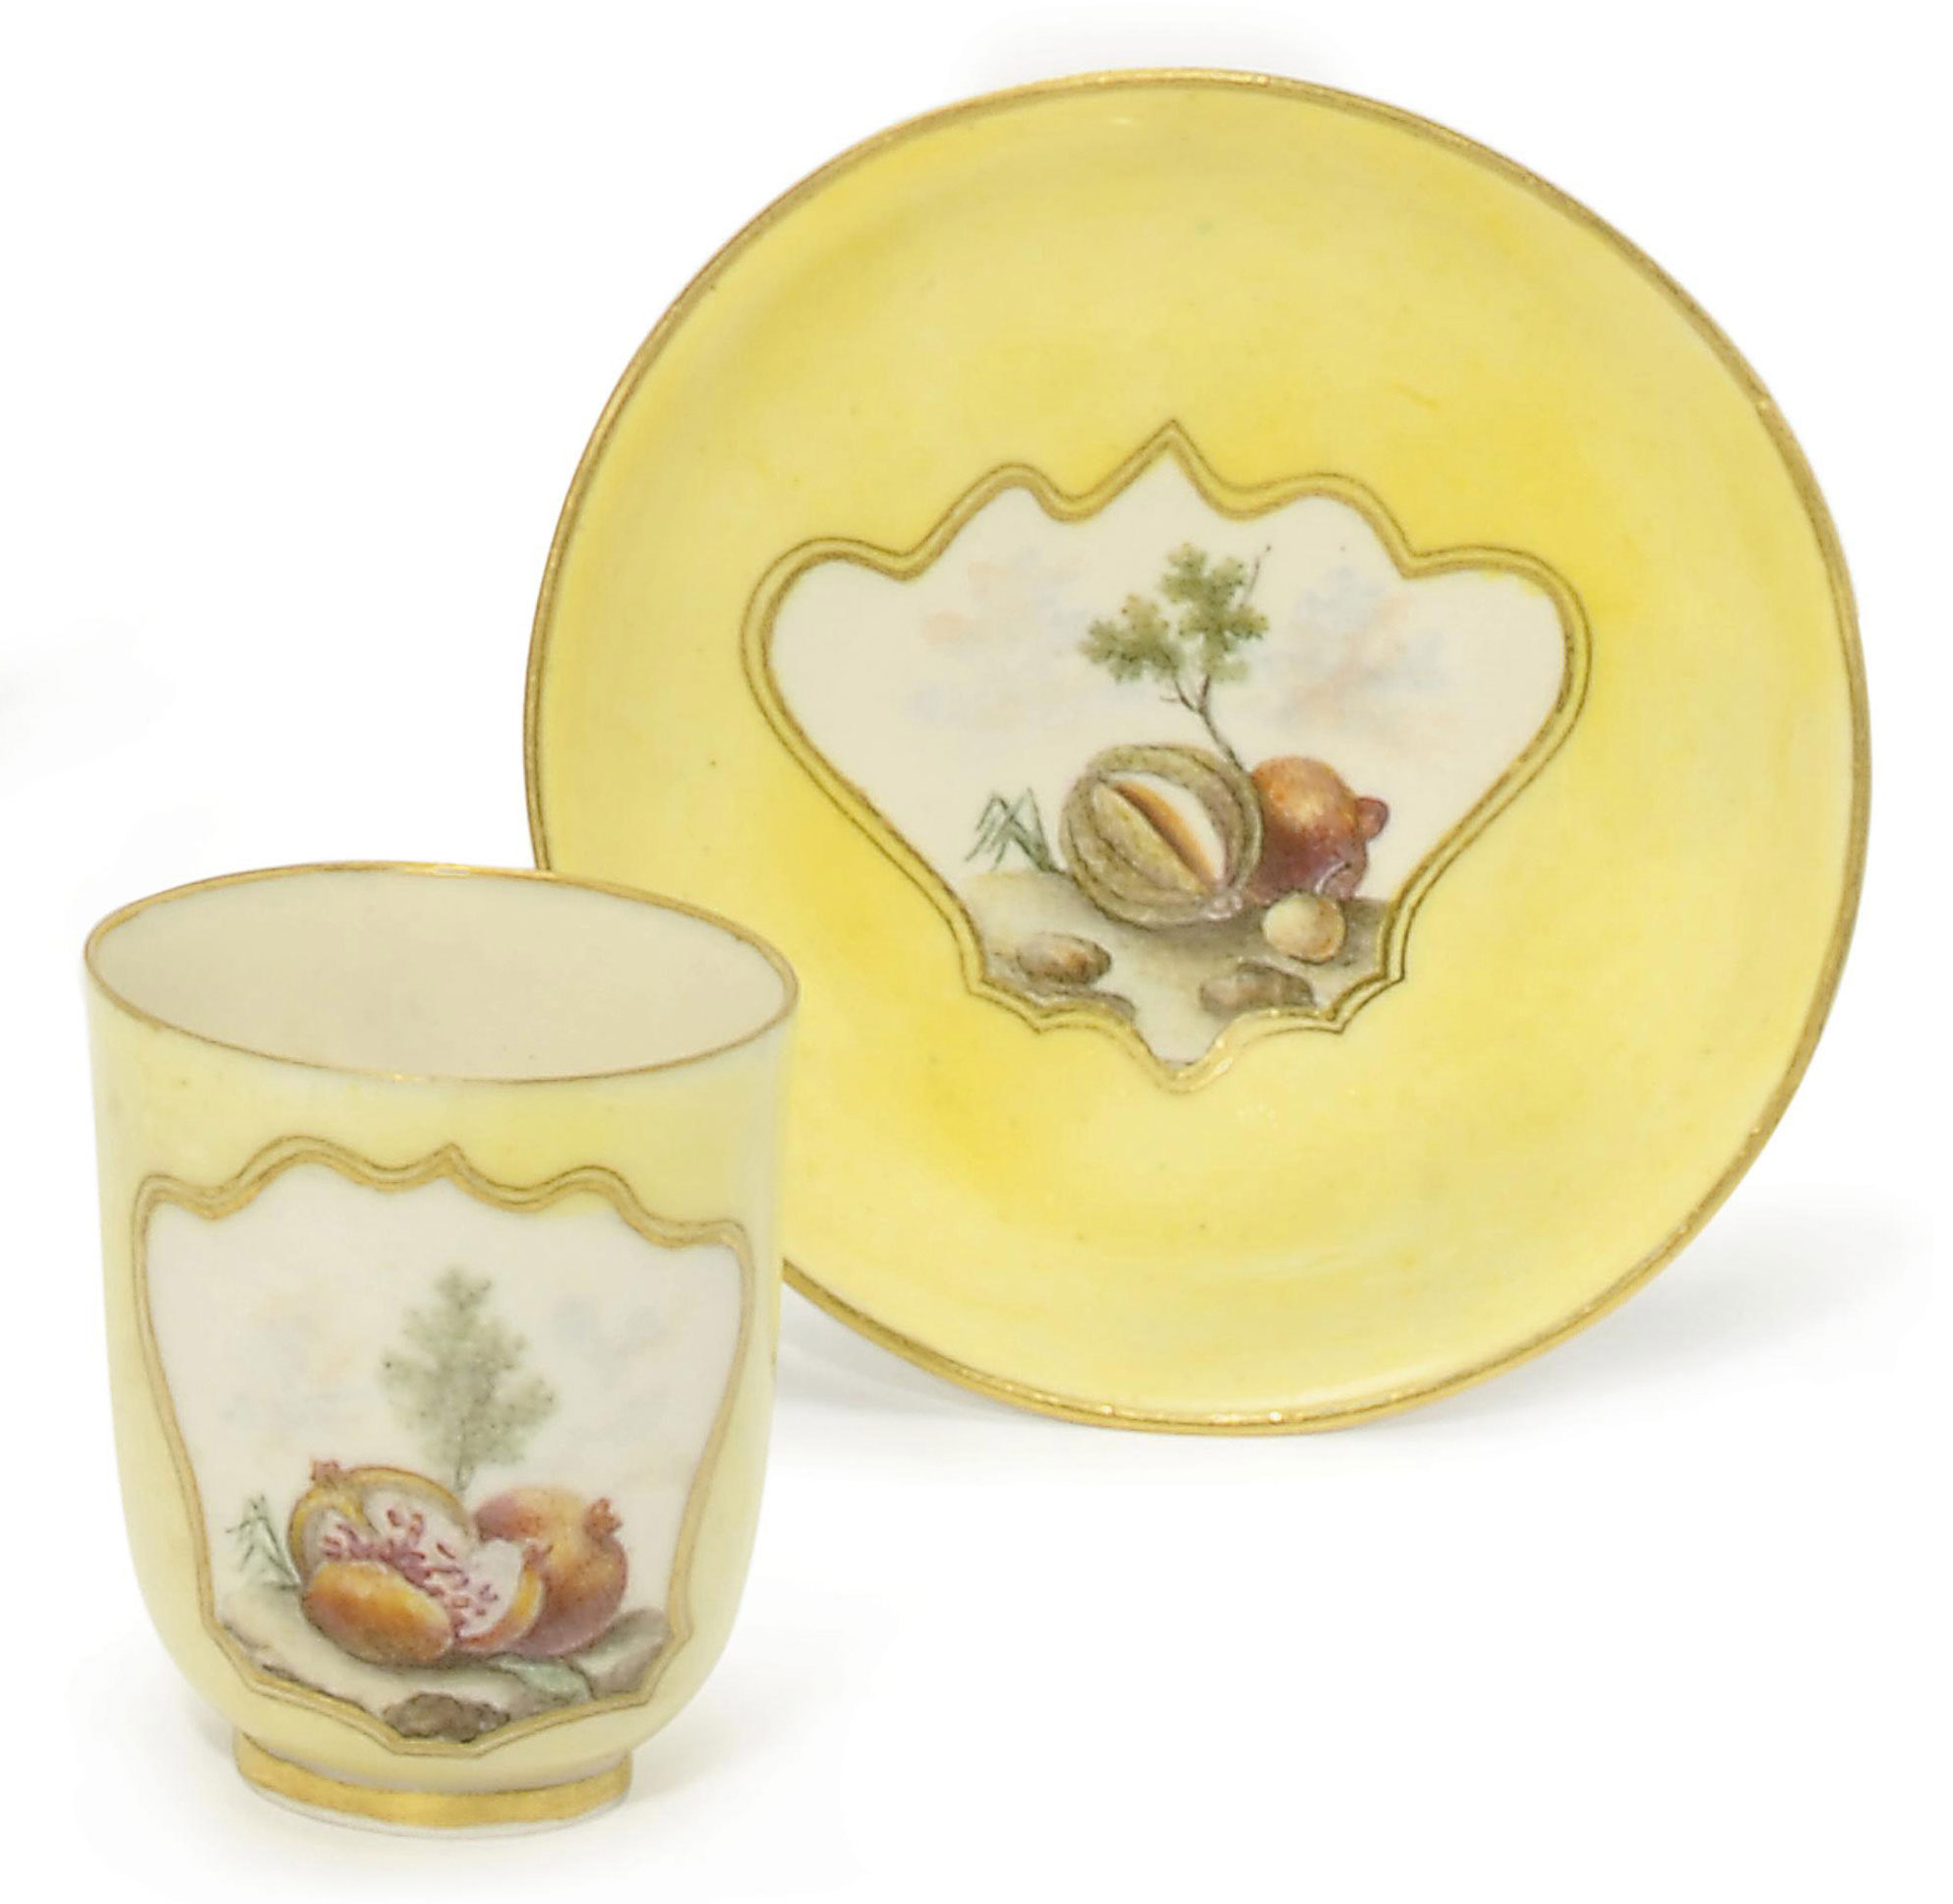 A CAPODIMONTE (CARLO III) YELLOW-GROUND COFFEE-CUP AND SAUCER